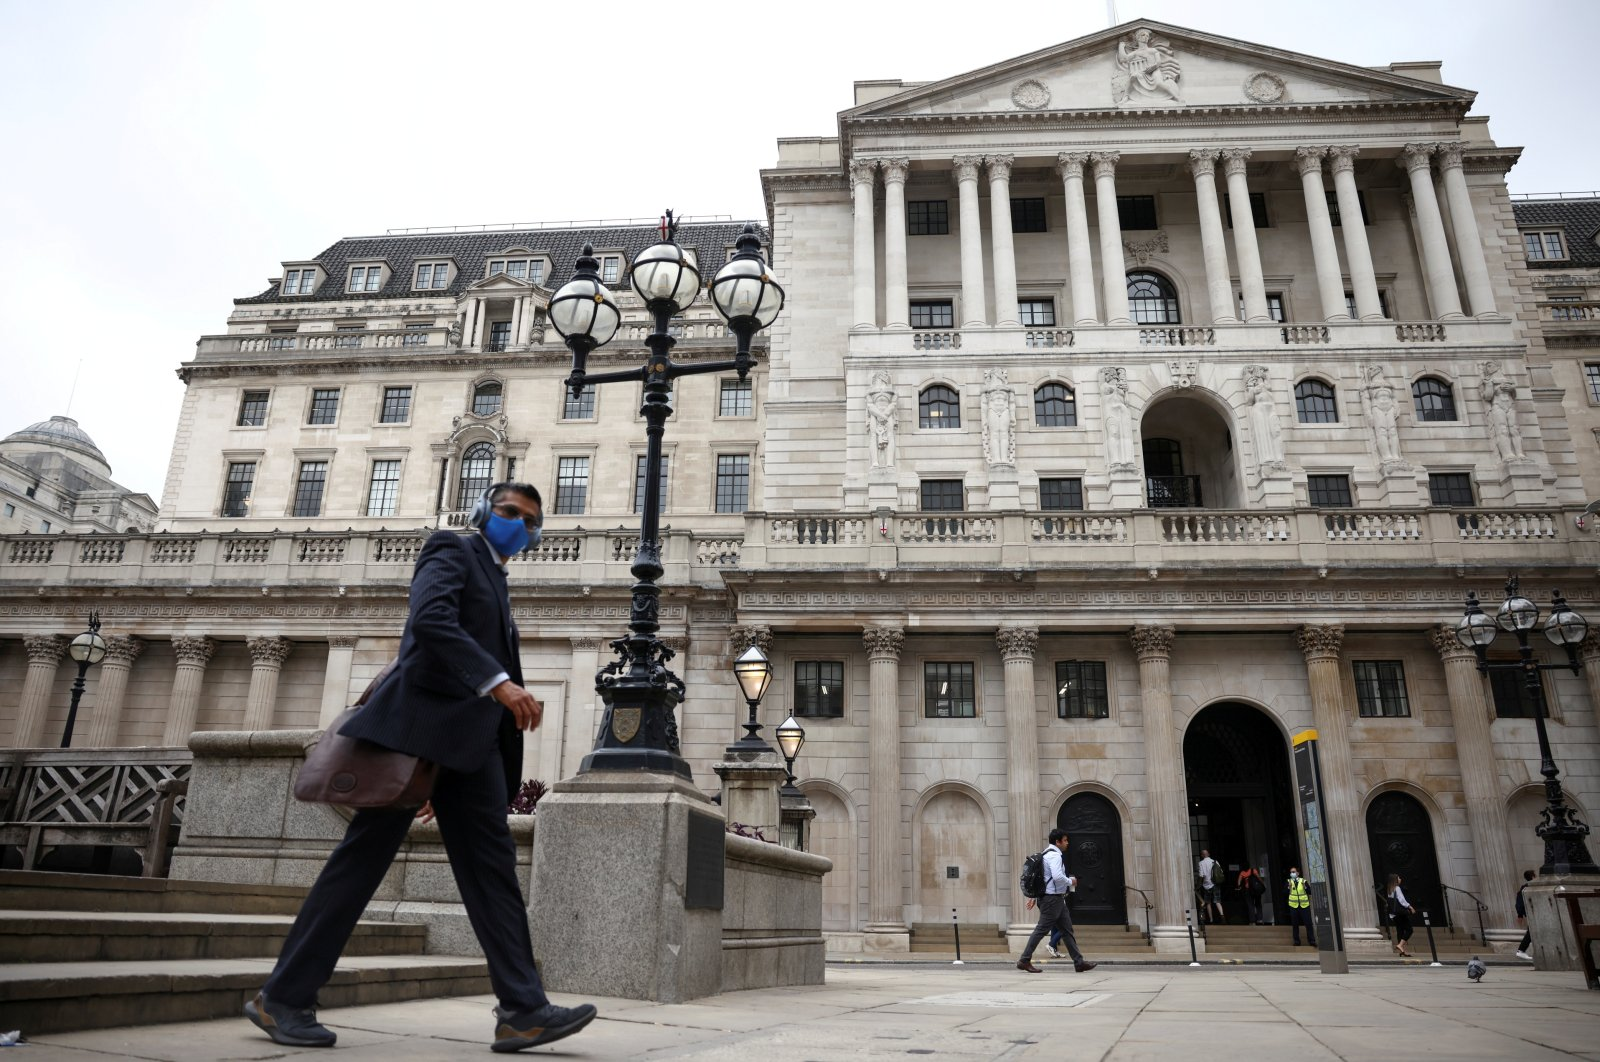 A person walks past the Bank of England in the City of London financial district, in London, U.K., June 11, 2021. (Reuters Photo)